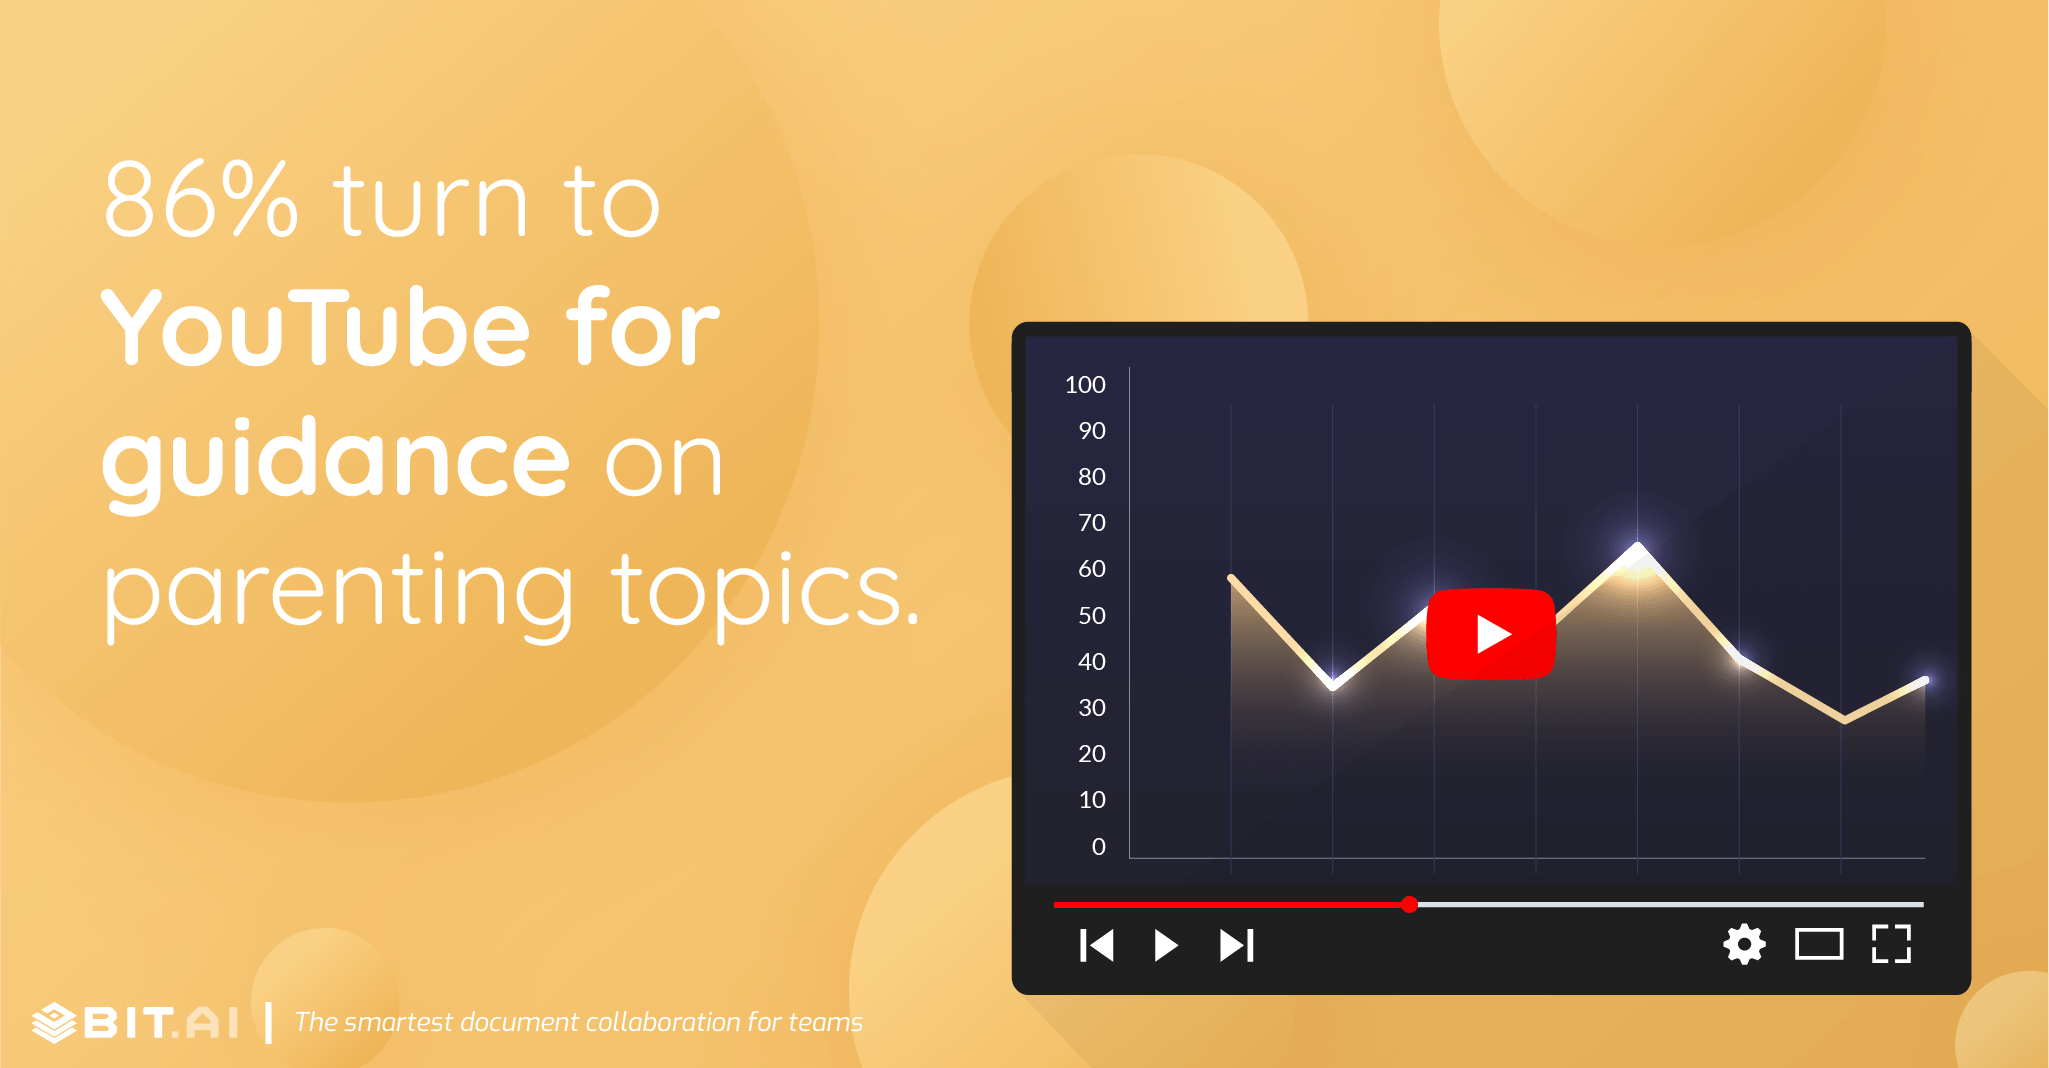 86% turn to YouTube for guidance on parenting topics.